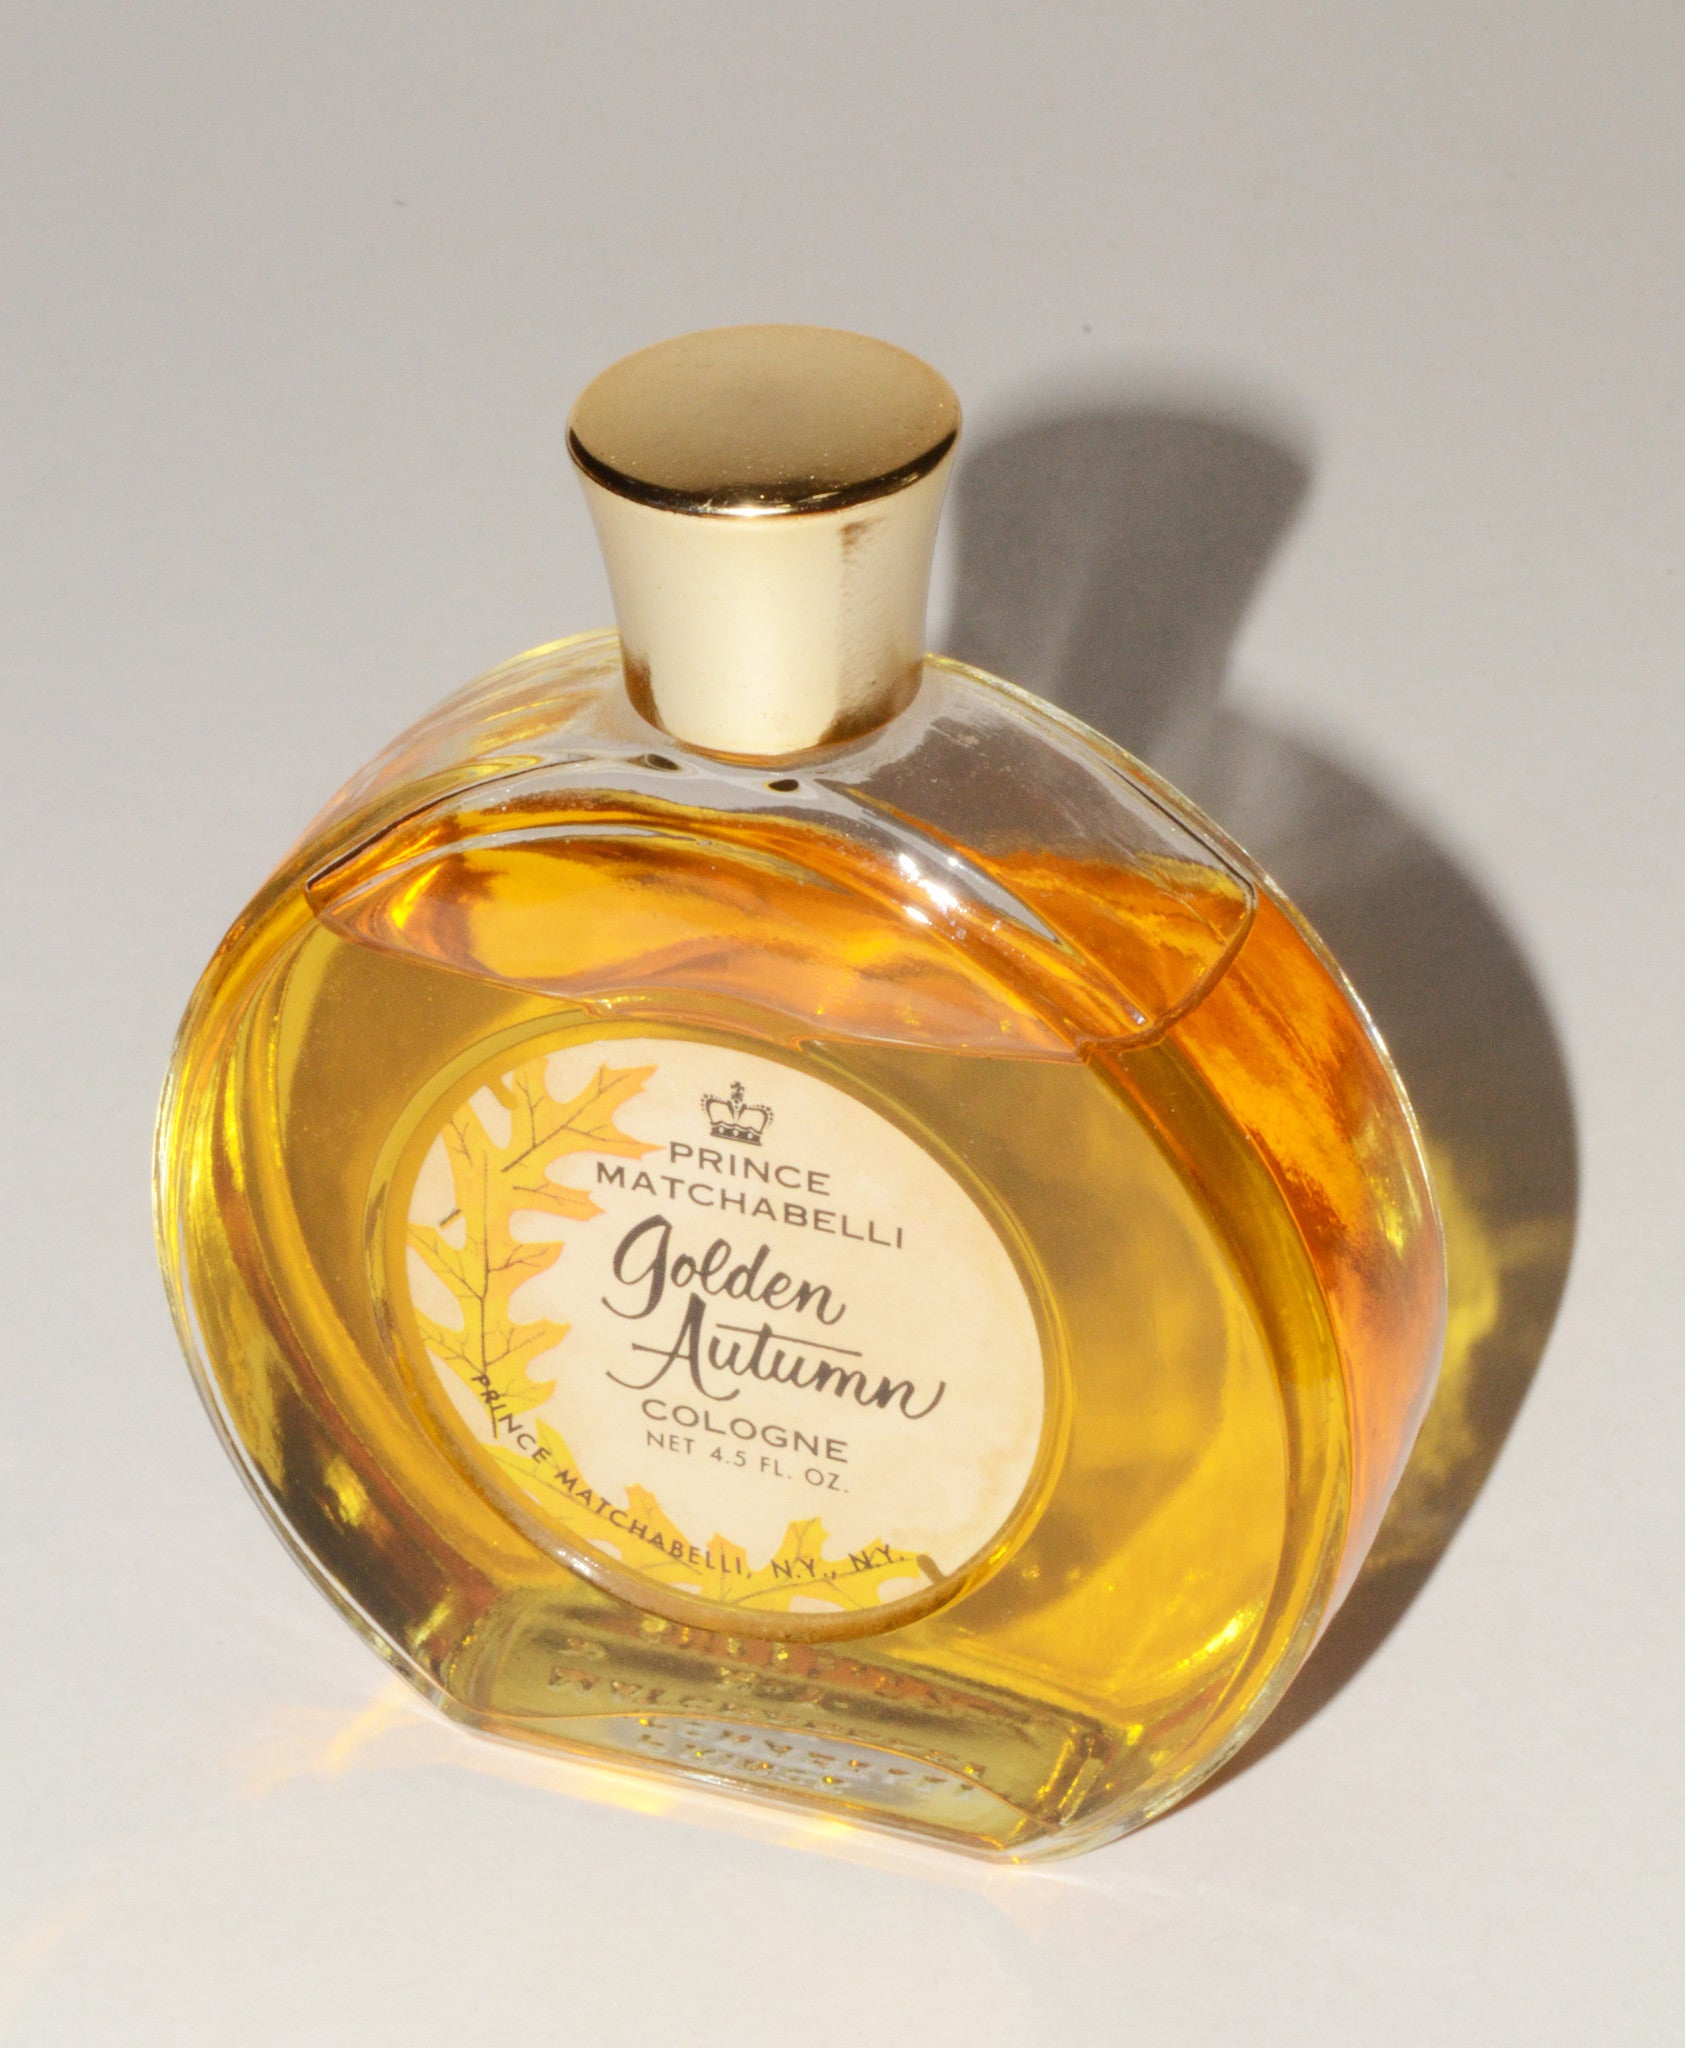 Vintage Golden Autumn Cologne By Prince Matchabelli